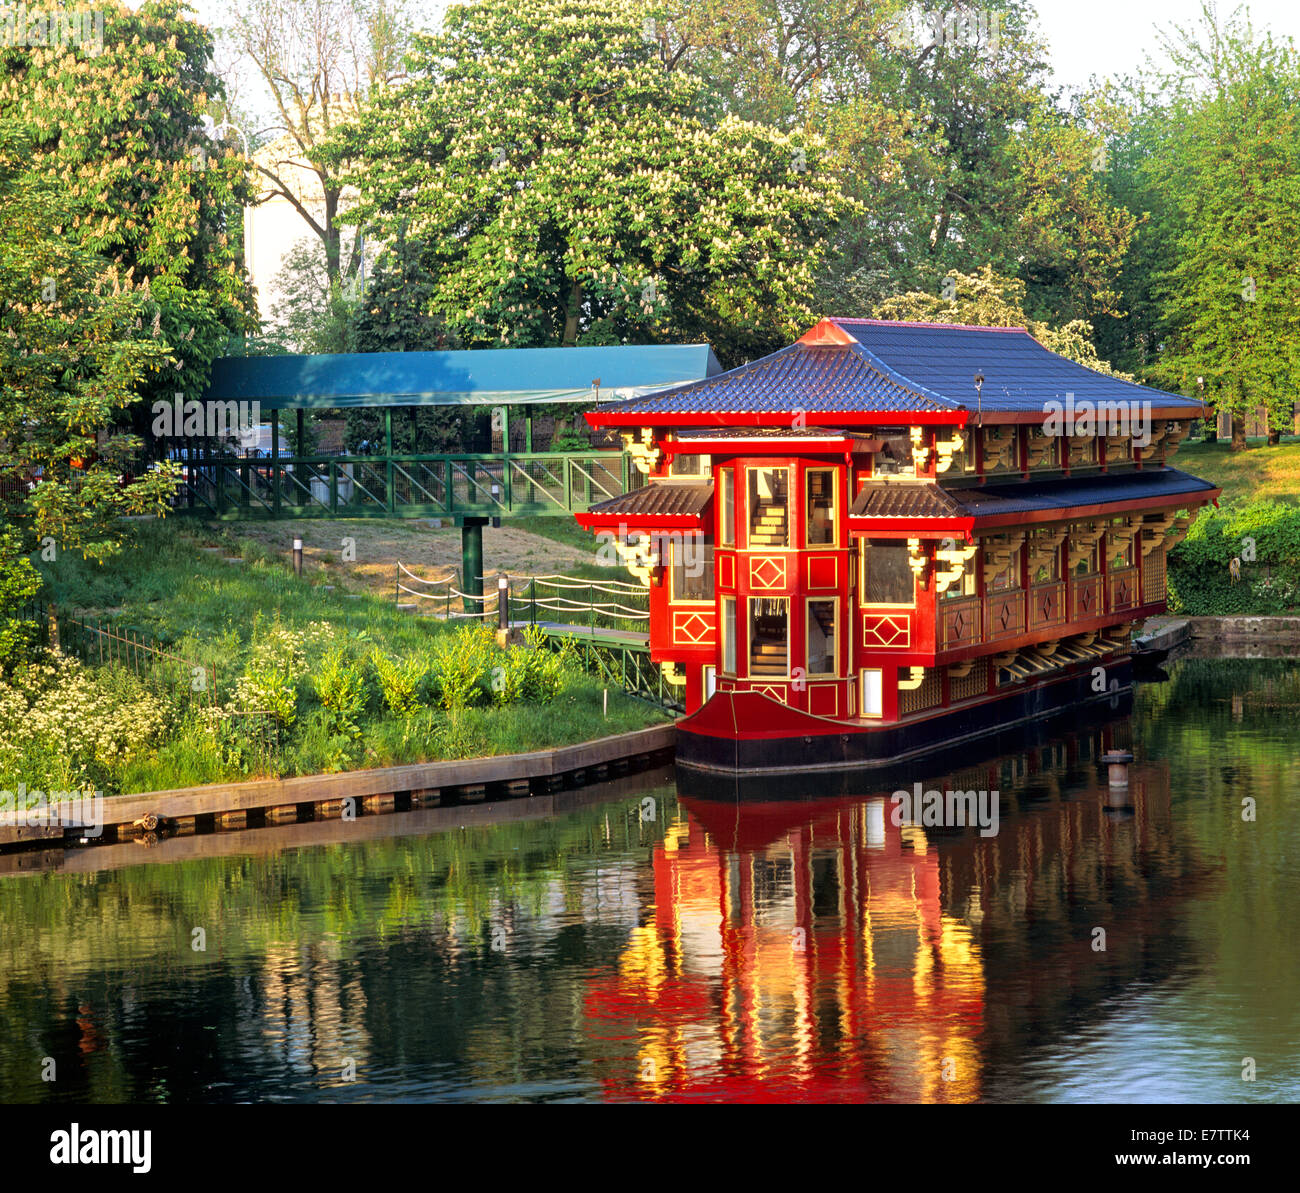 Chinese Restaurant In Regents Park On A Boat